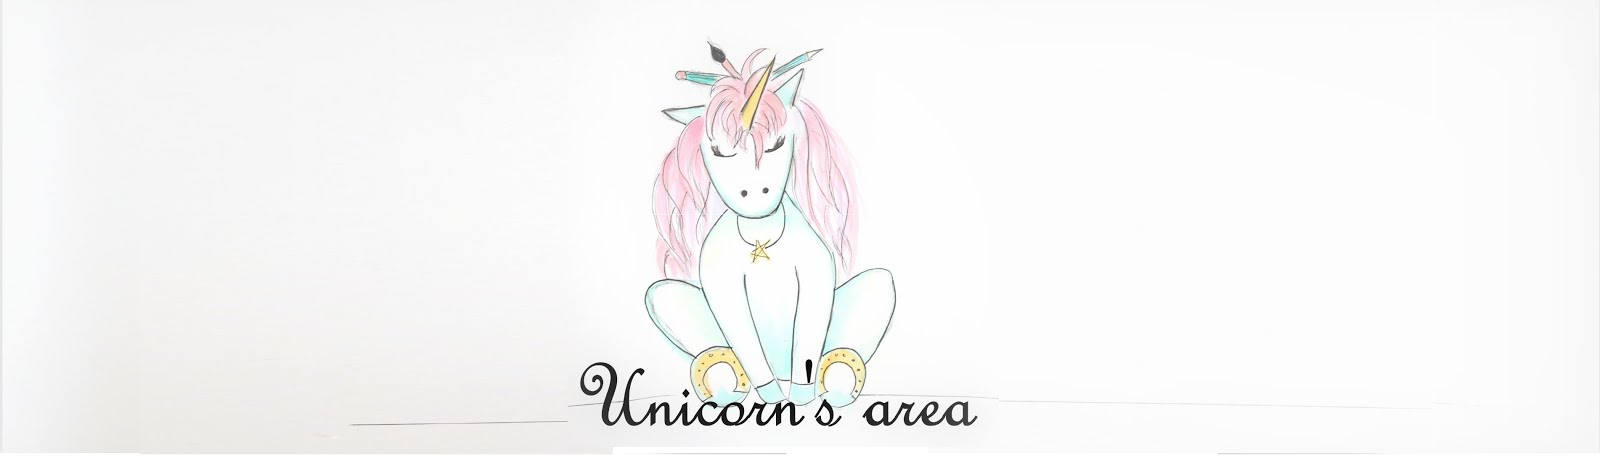 Unicorn's area